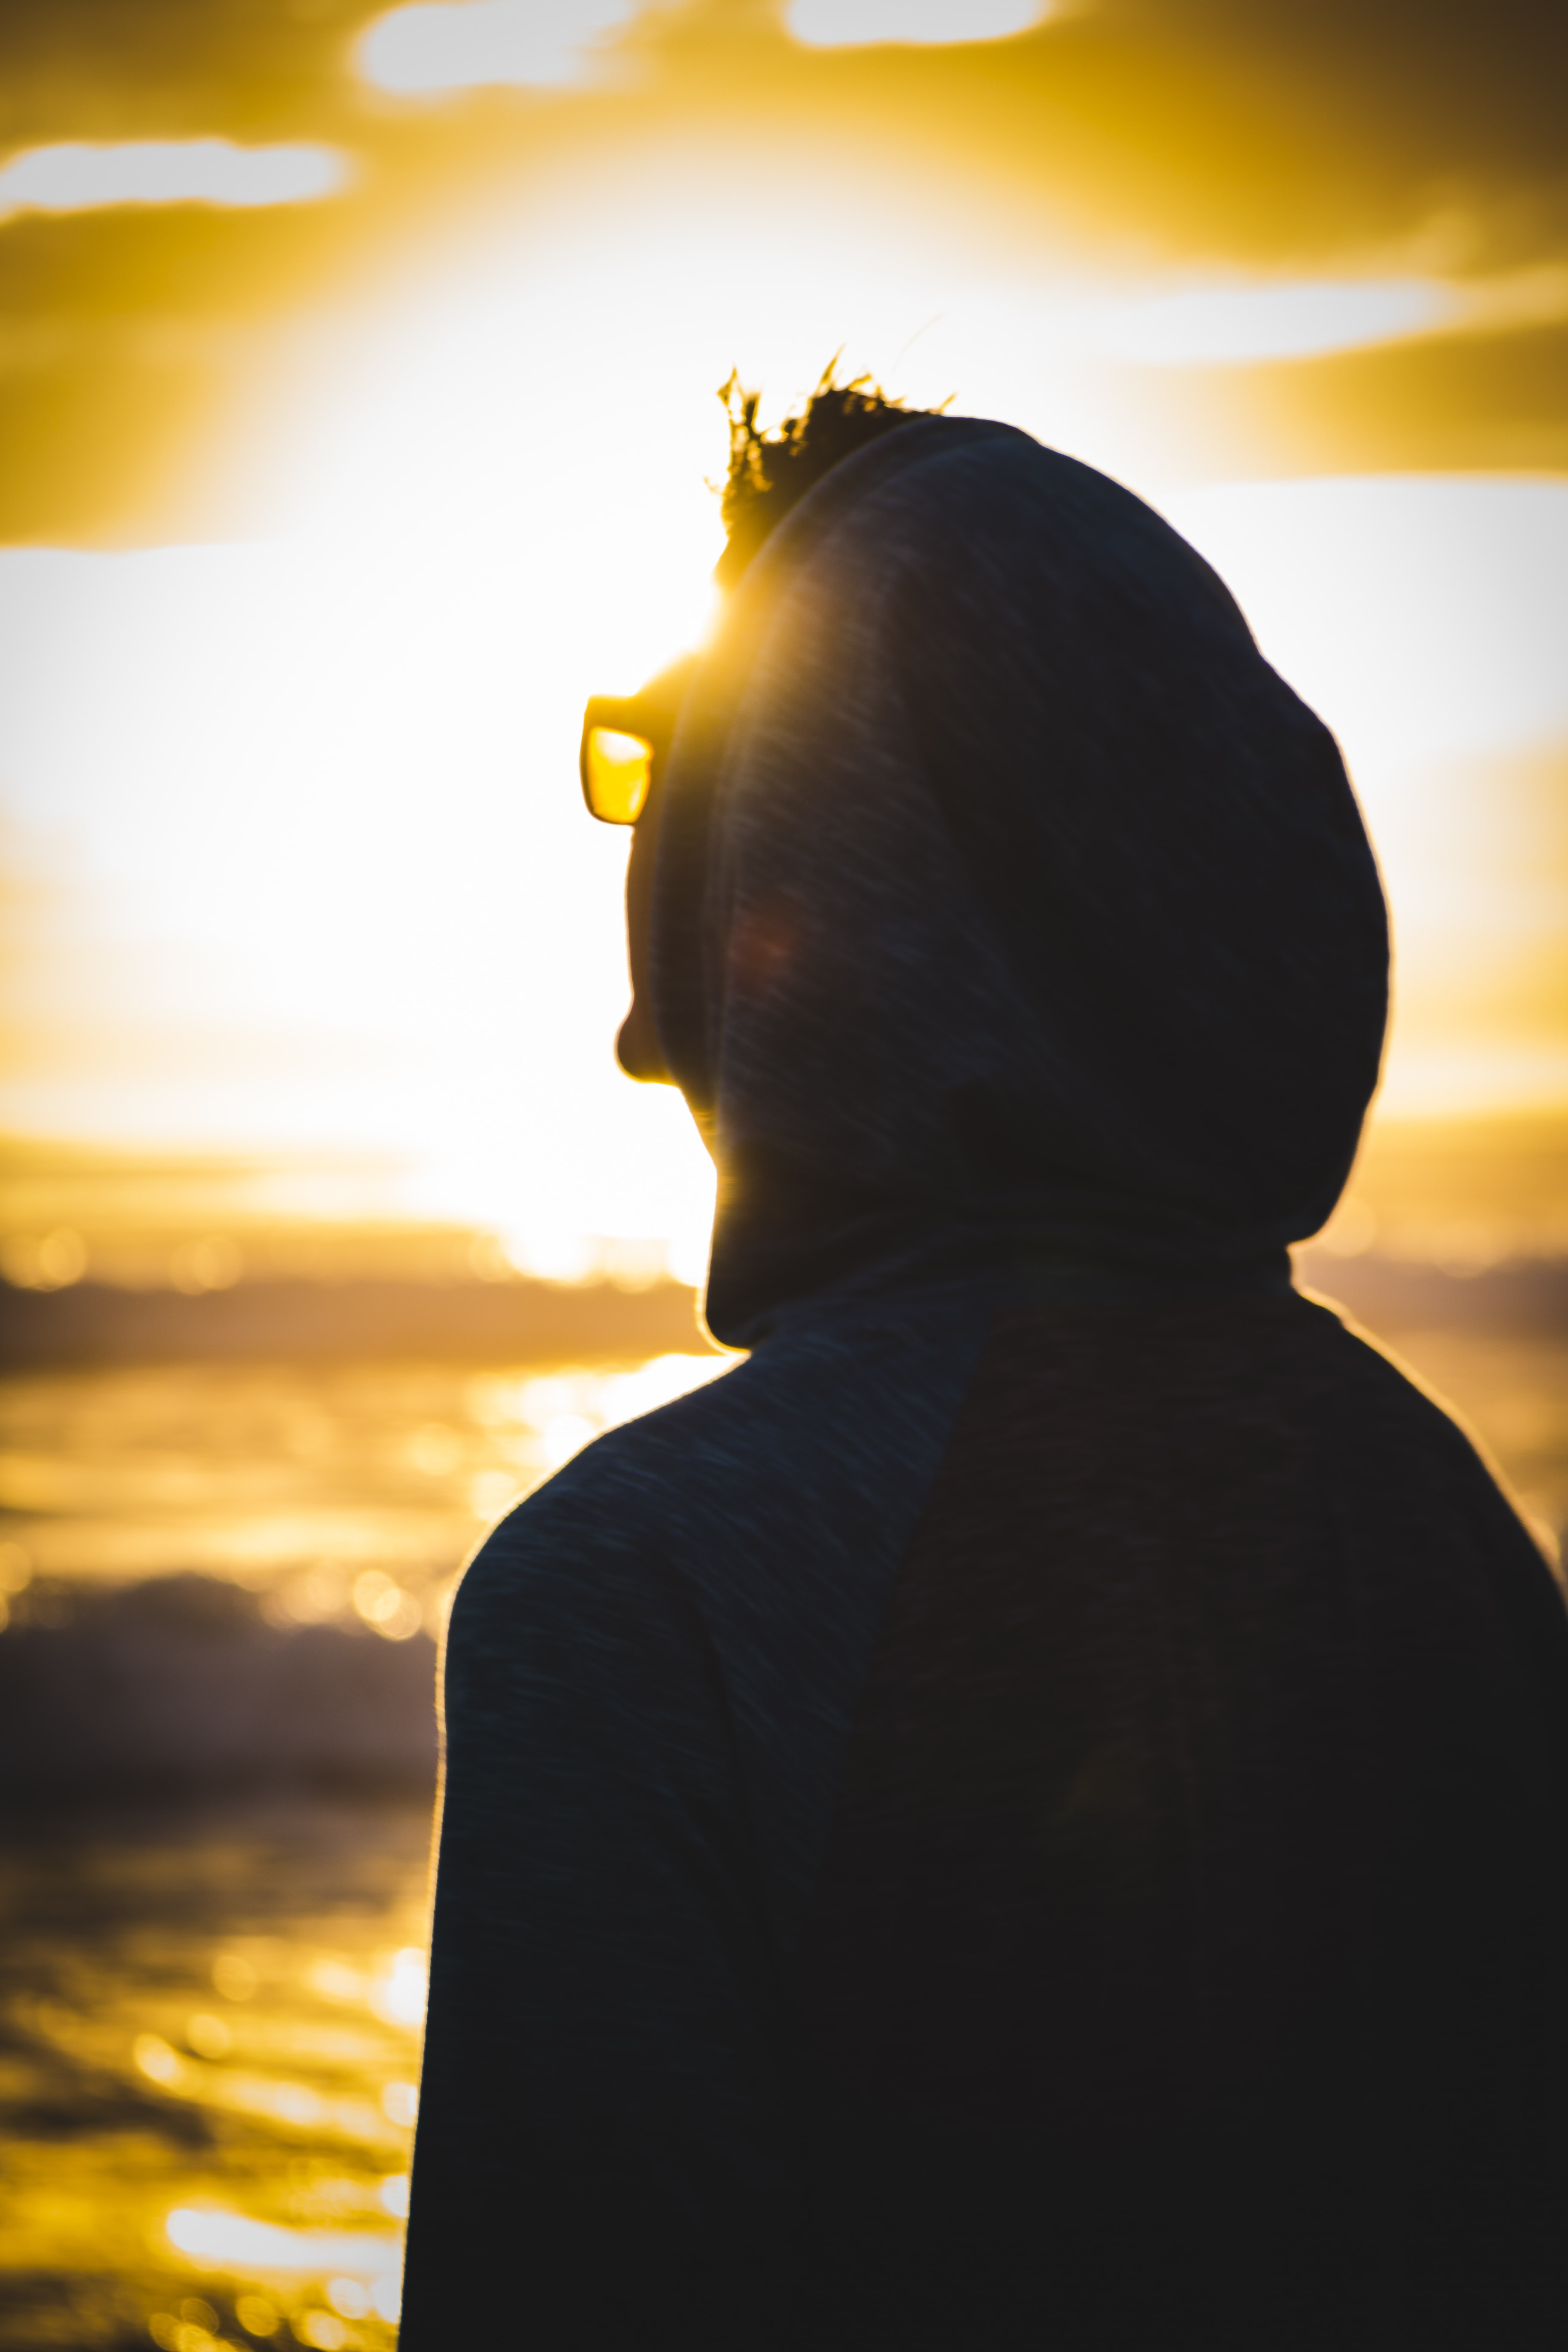 A person in glasses and a hoodie looks toward the bright sun in Malibu